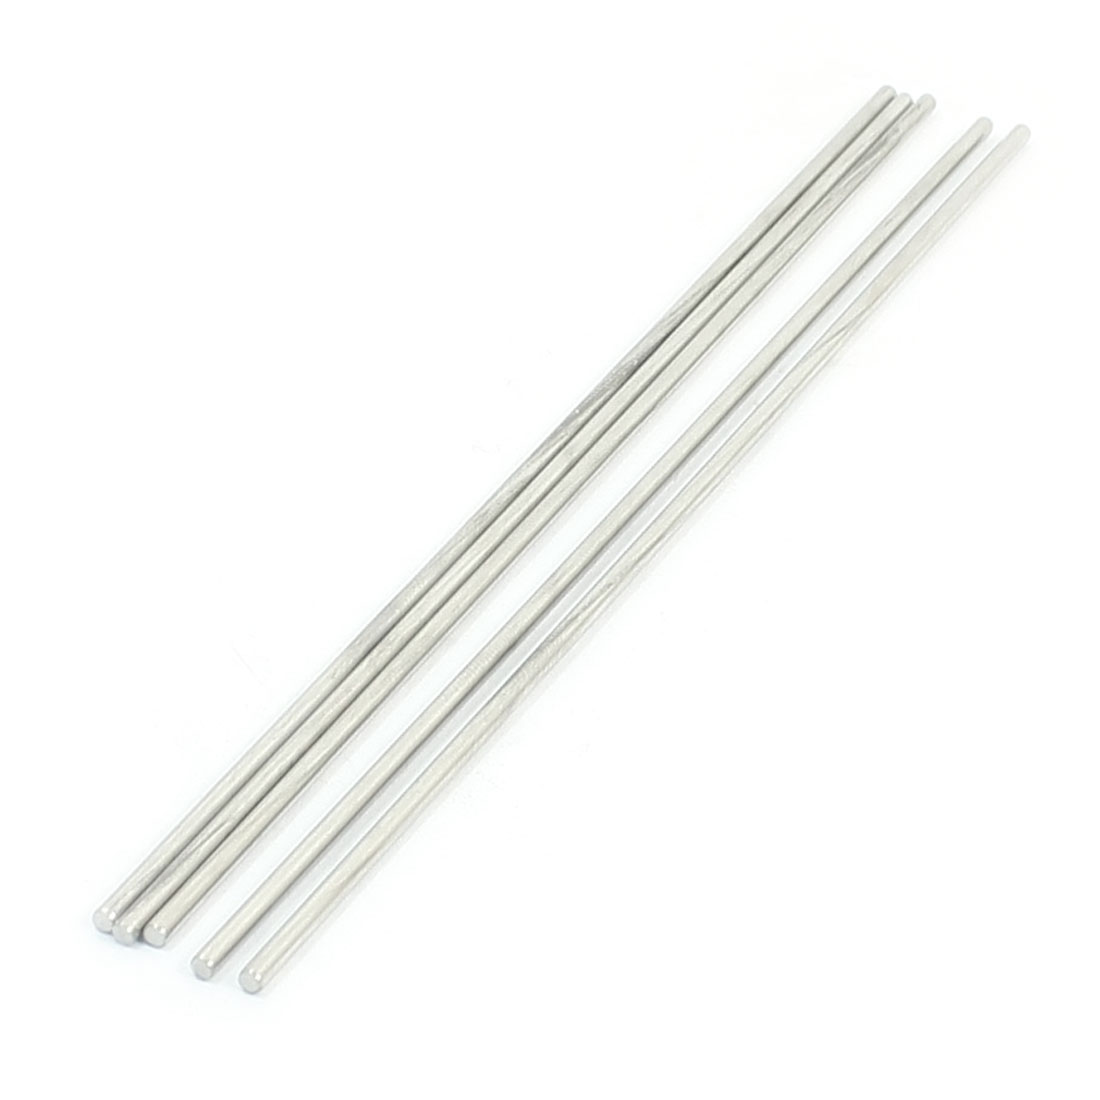 5PCS RC Smart Car Toy Parts Stainless Steel Round Bar Shaft 180mmx2.5mm